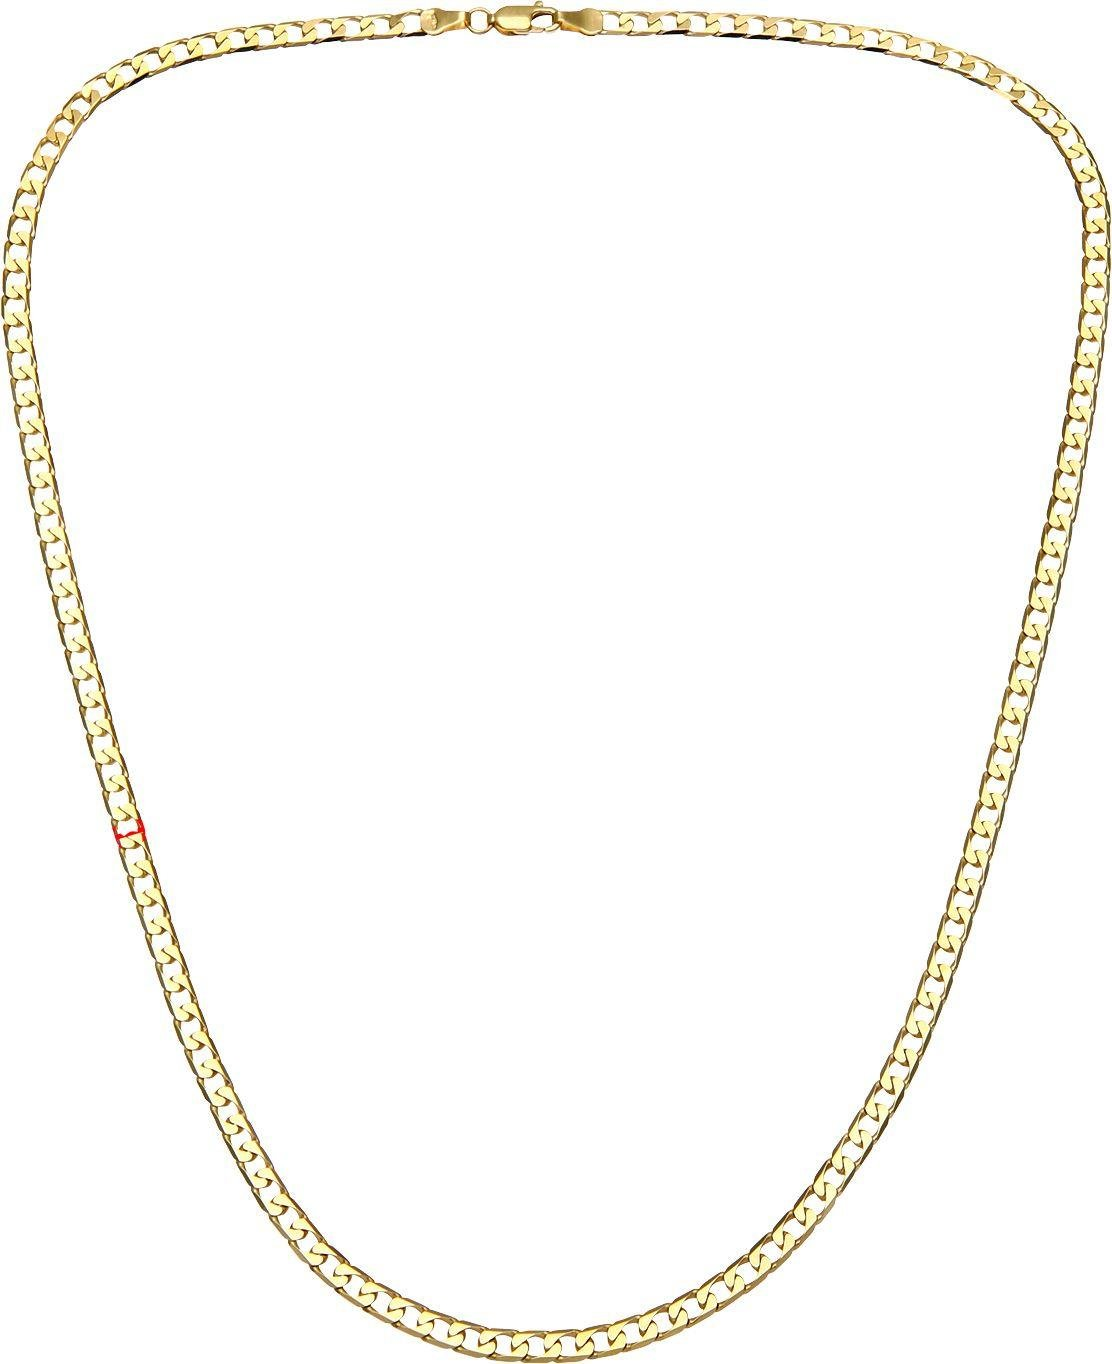 Image of 9ct Gold 22 inch Solid Chain Necklace